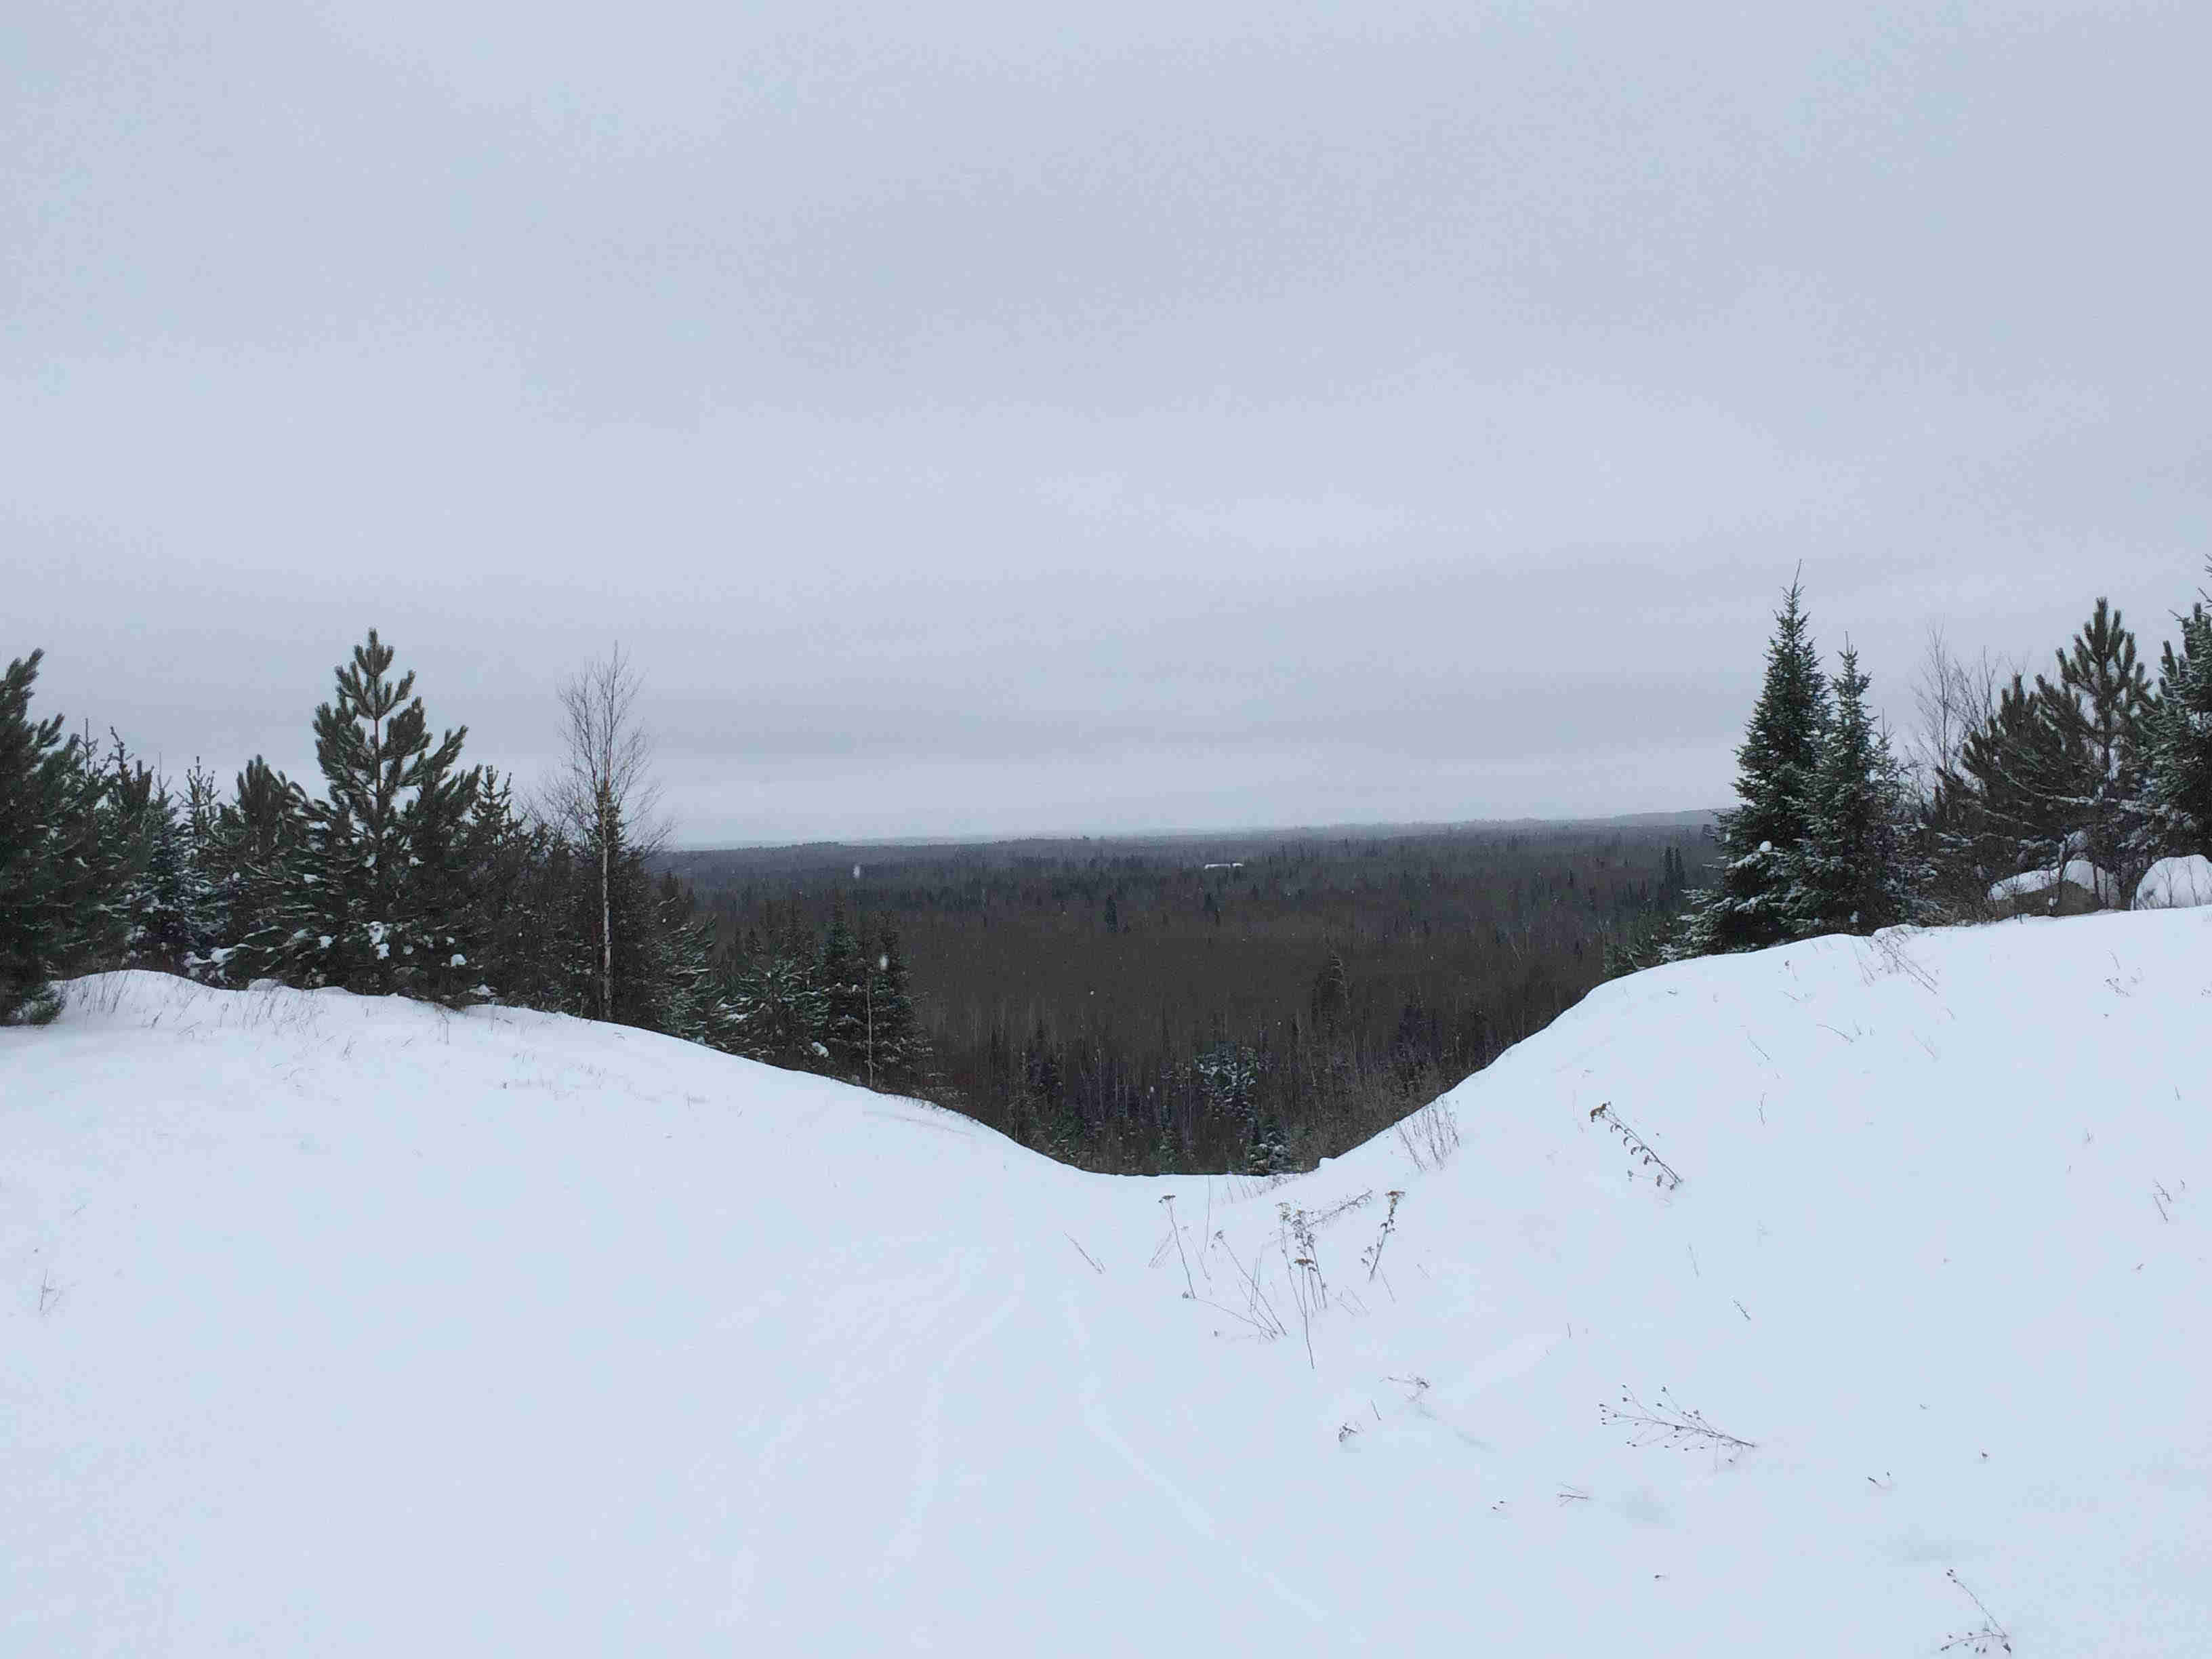 A view from the top of a snow covered hill overlooking a pine forest